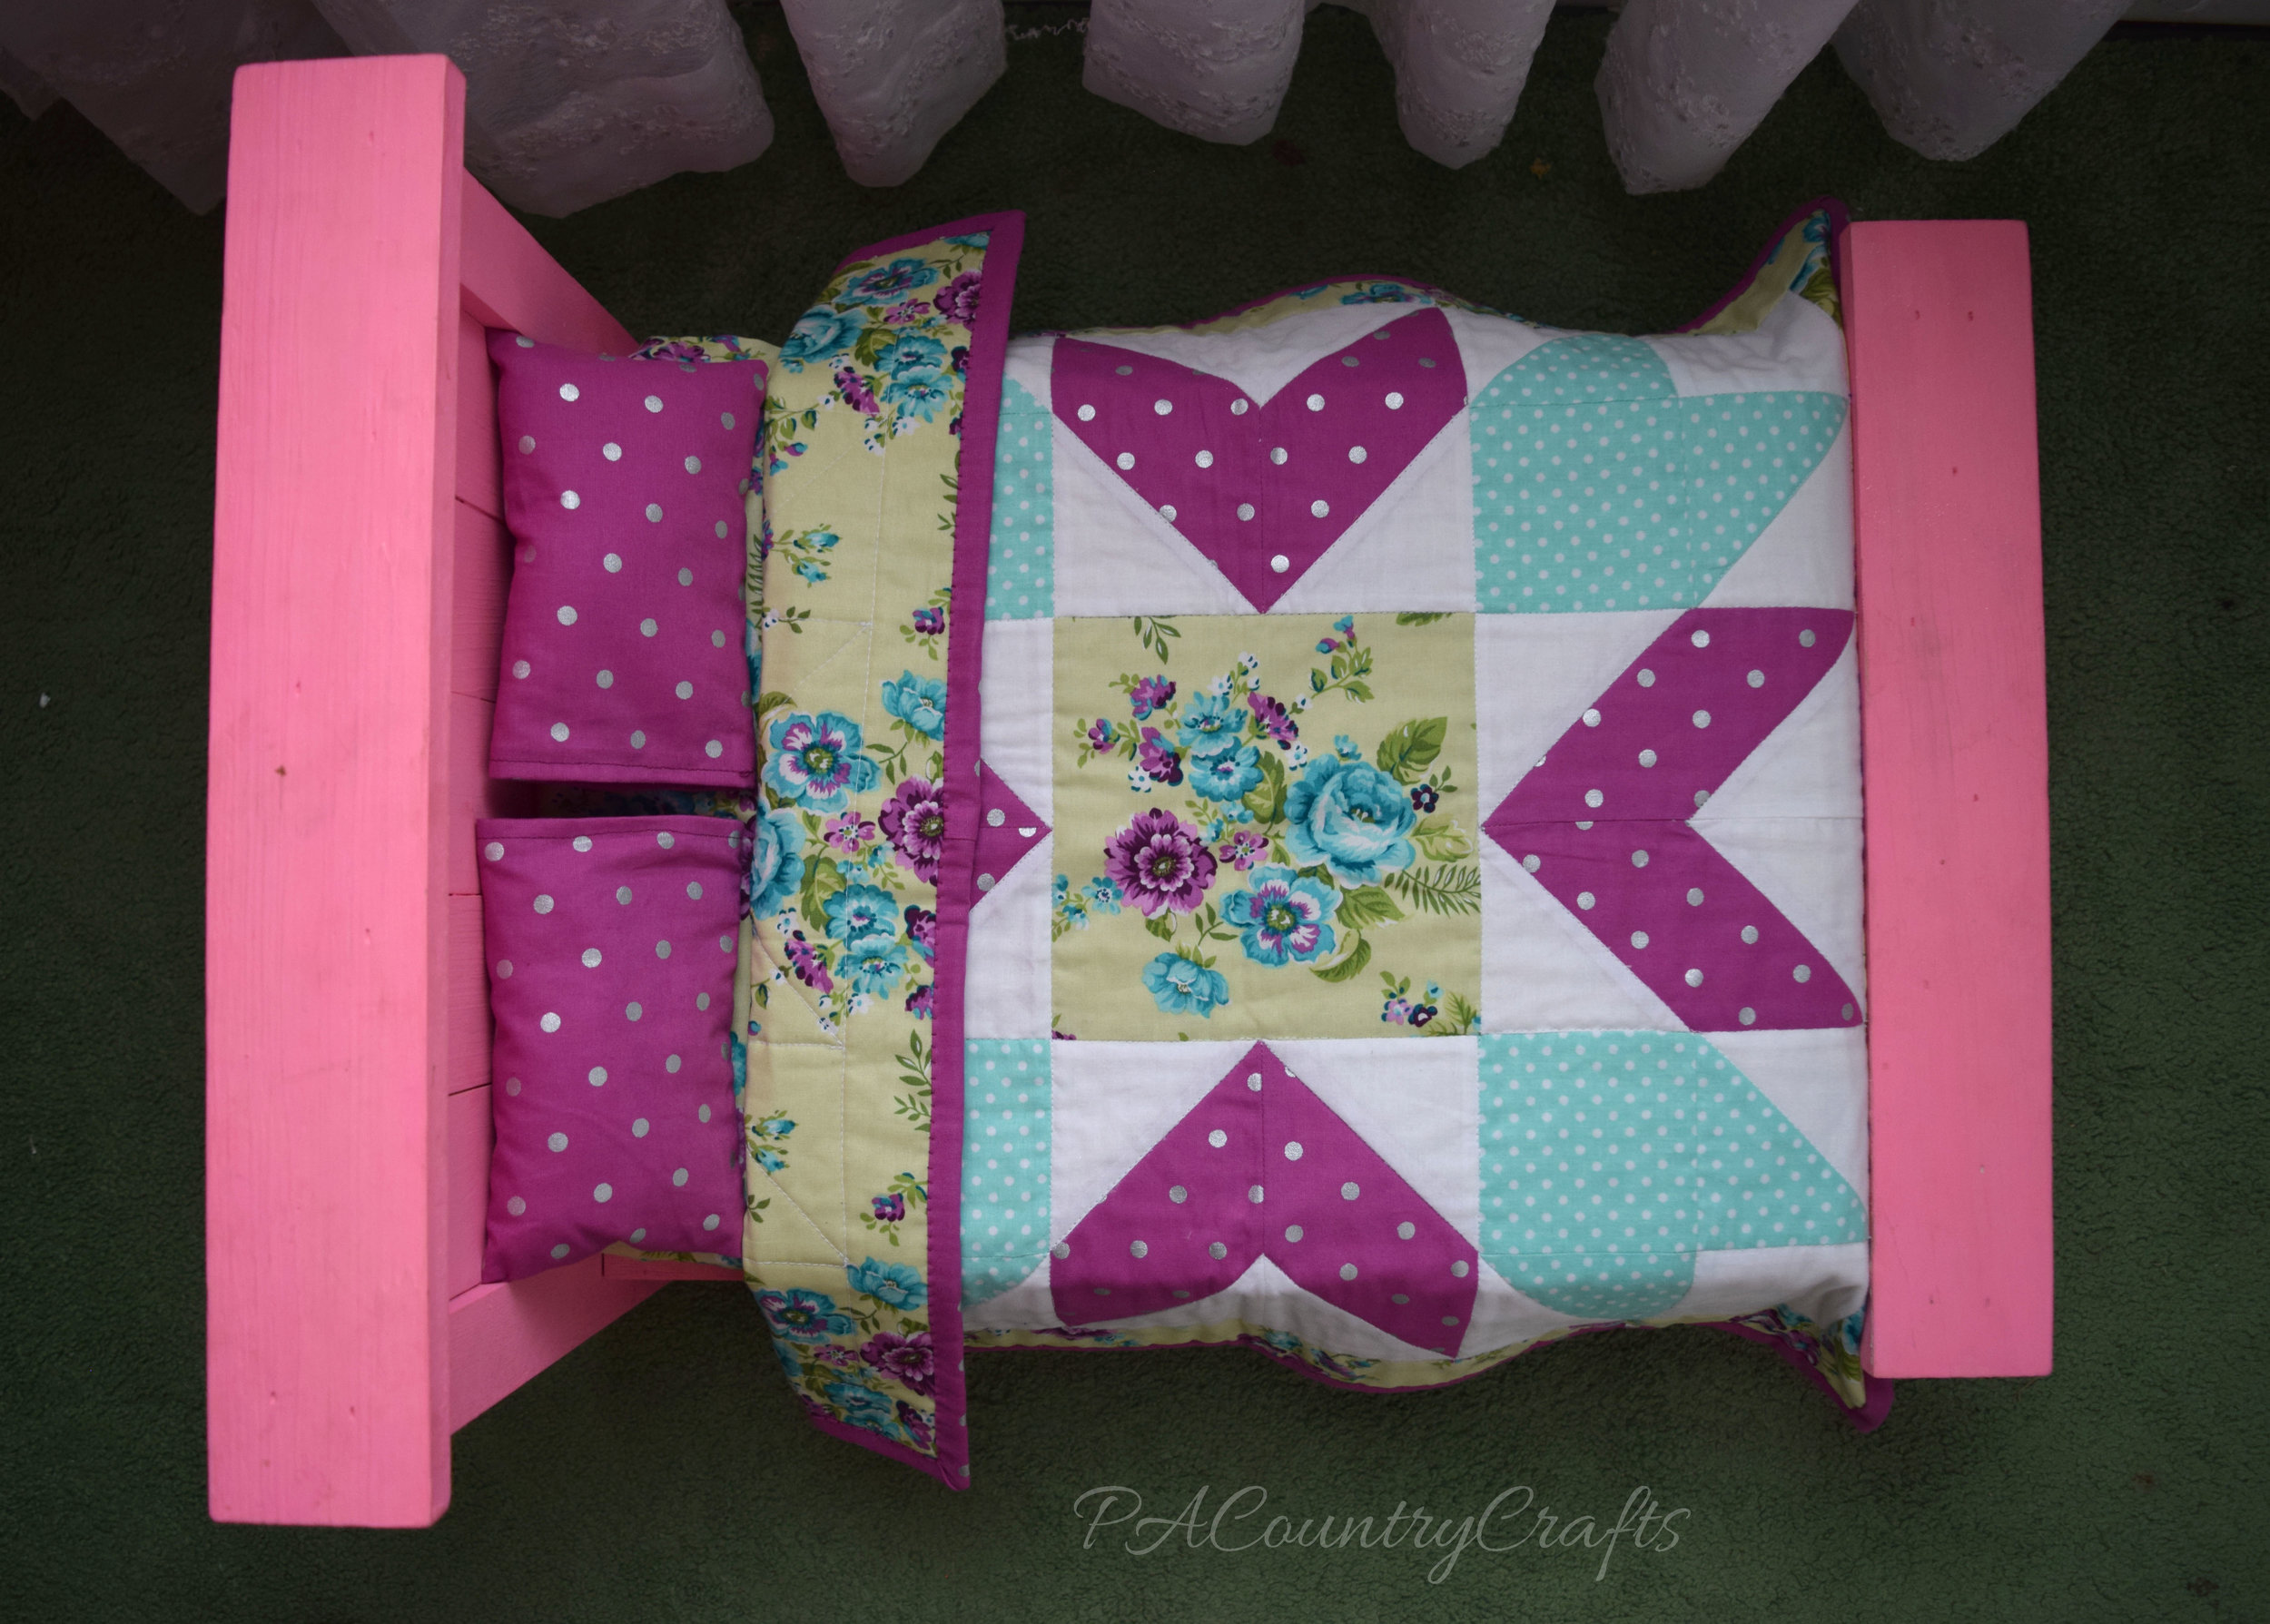 American Girl Pink Farmhouse Doll Bed with Star Quilt and Pillows